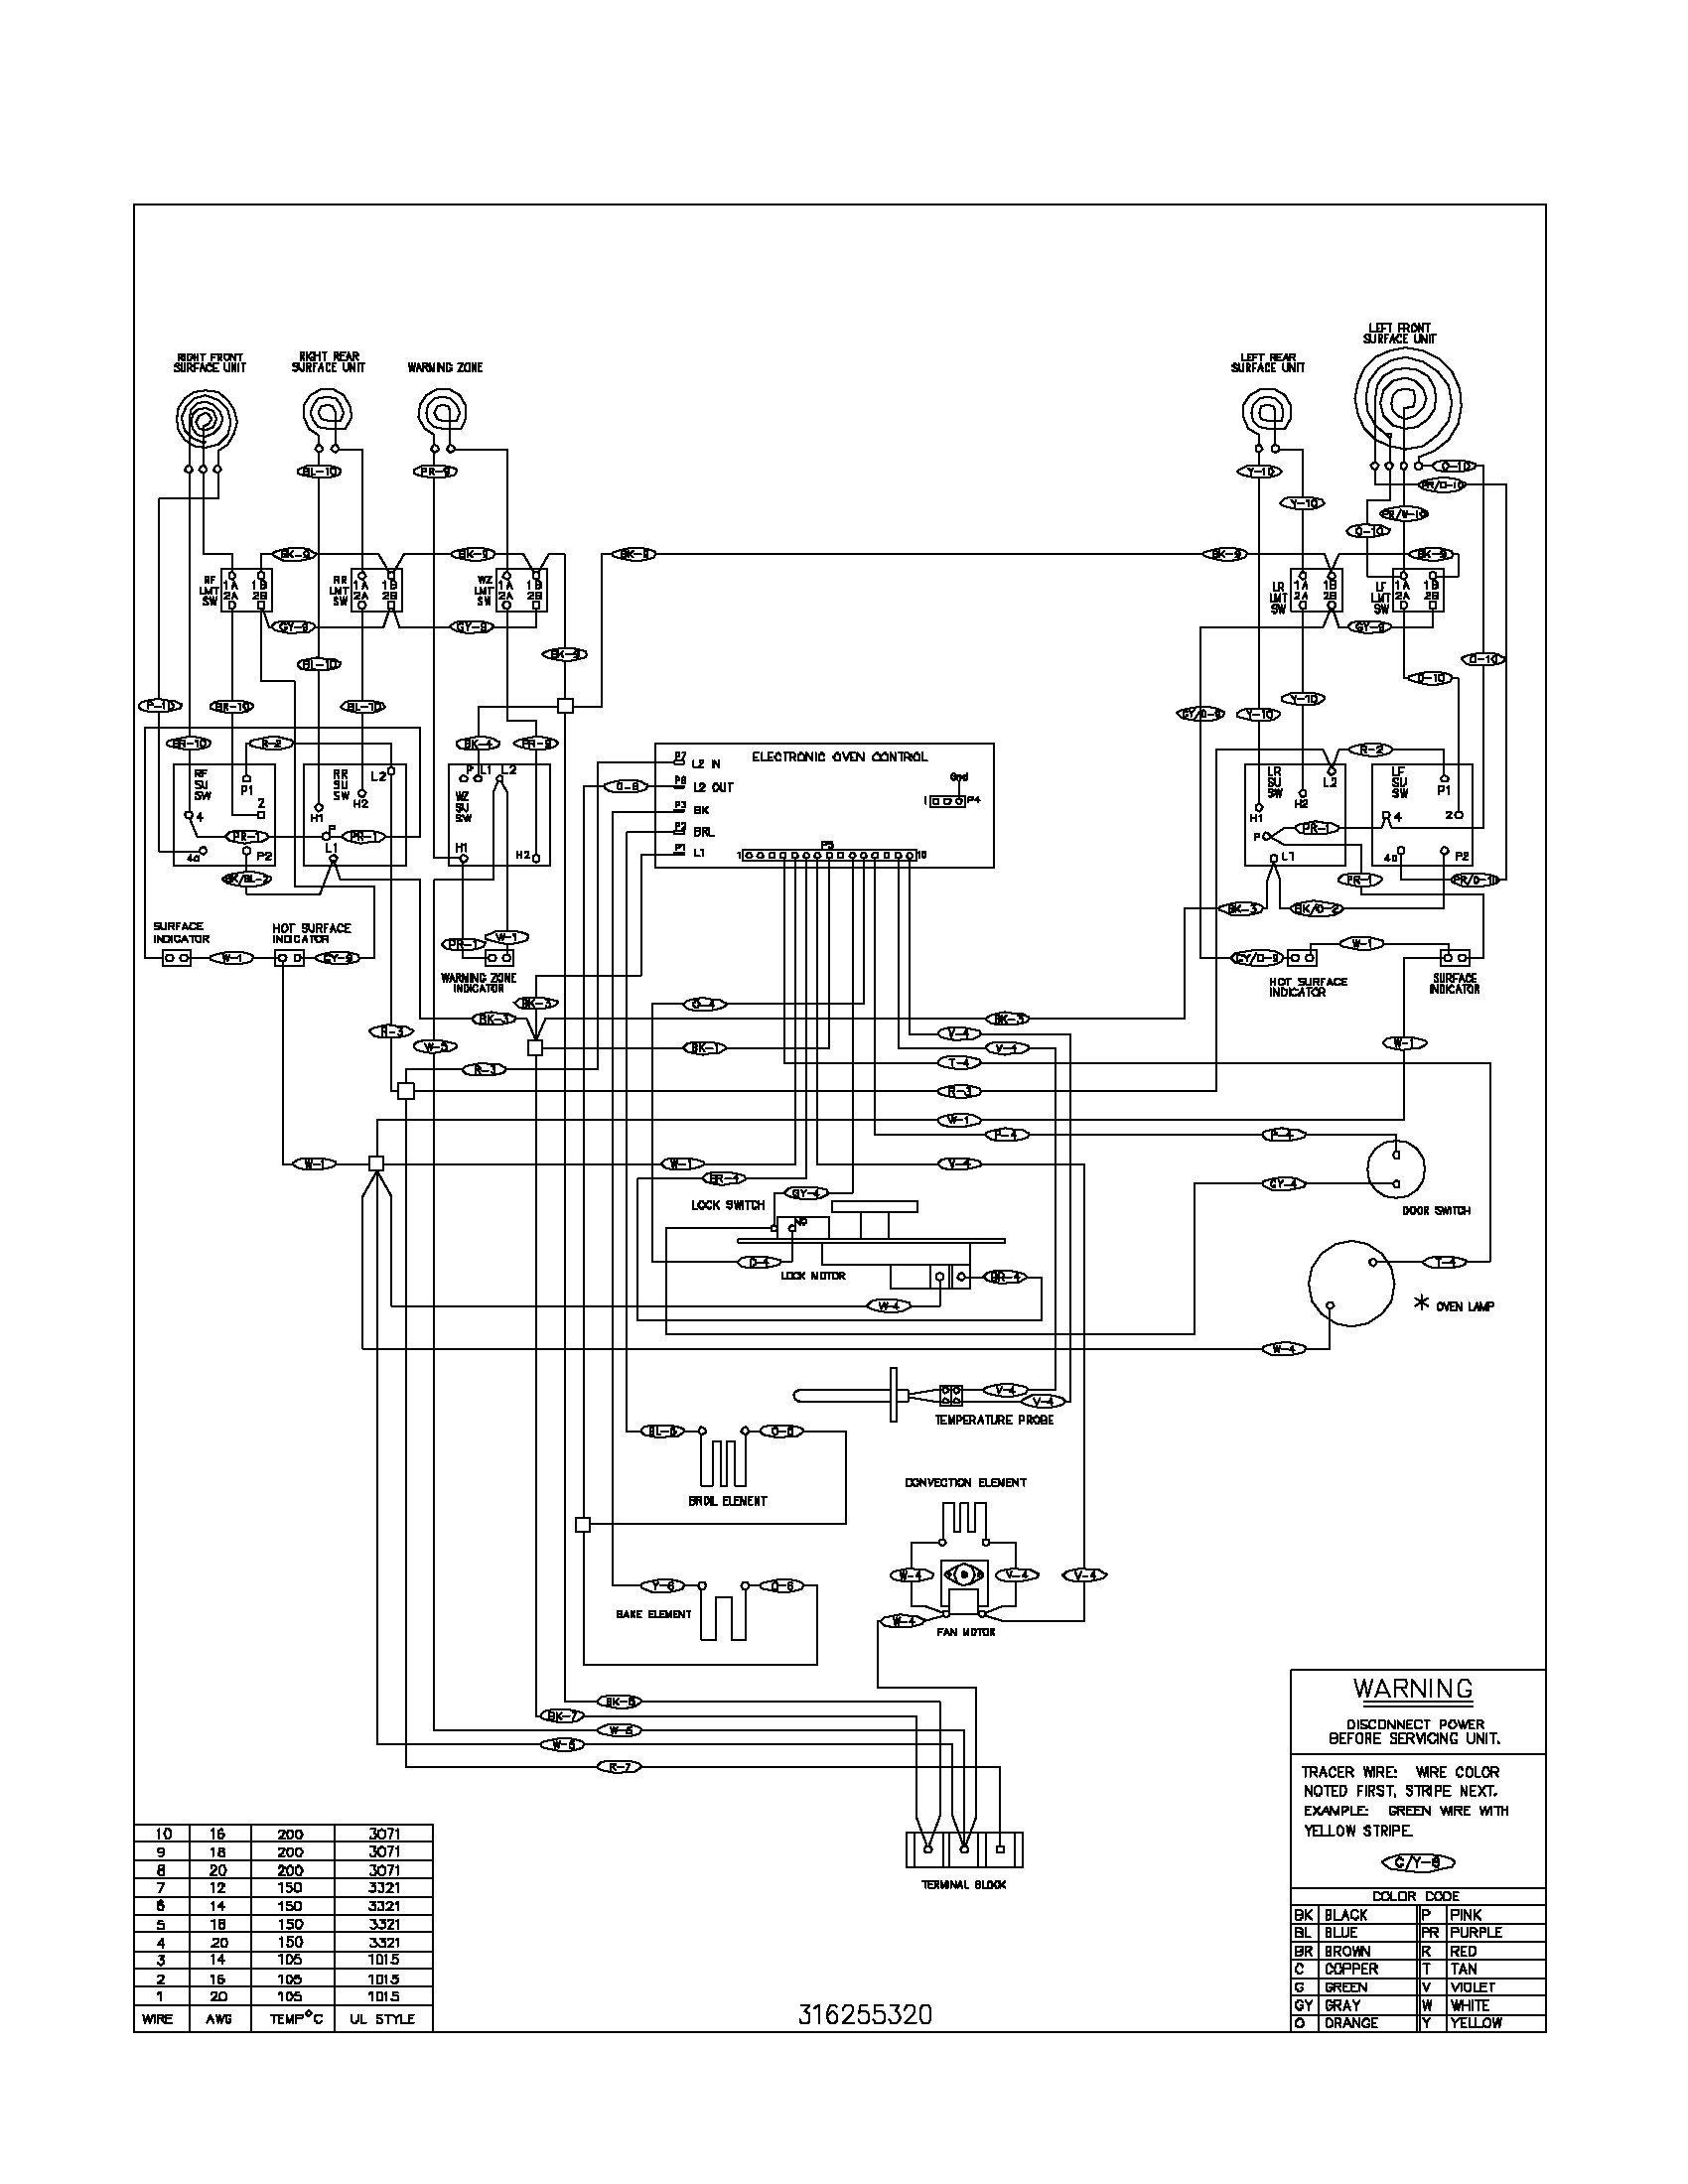 hight resolution of ge jkp1 oven wiring diagram wiring diagram ge jkp1 oven wiring diagram